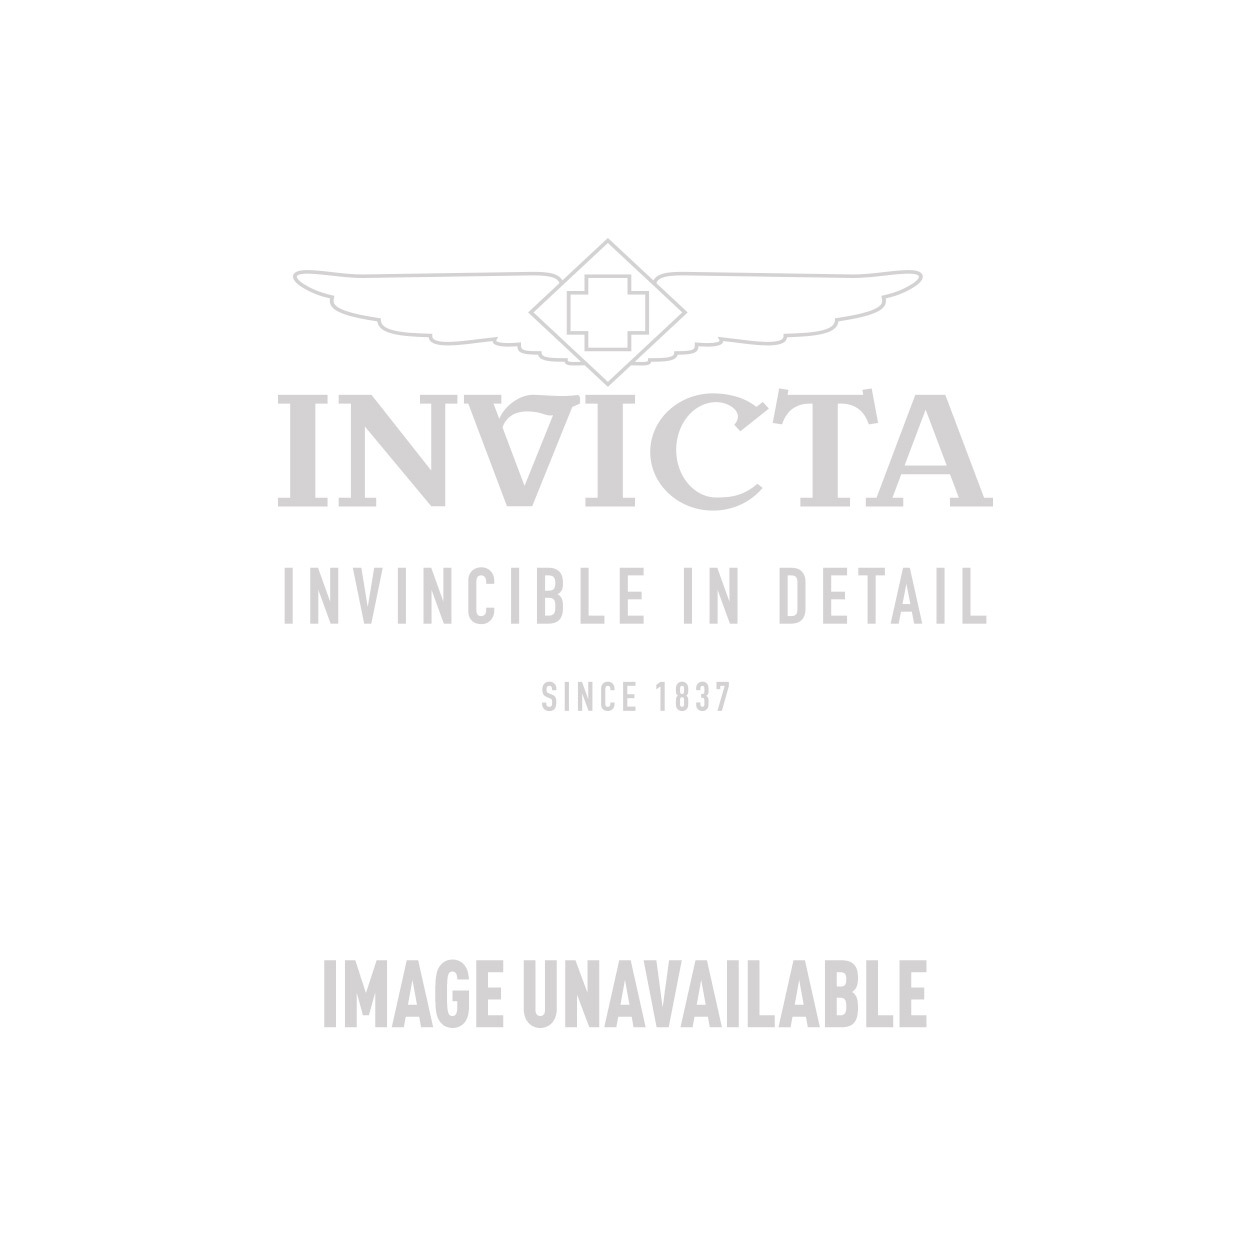 Invicta 20cm Women's Bracelets in Rose Gold - Model J0264